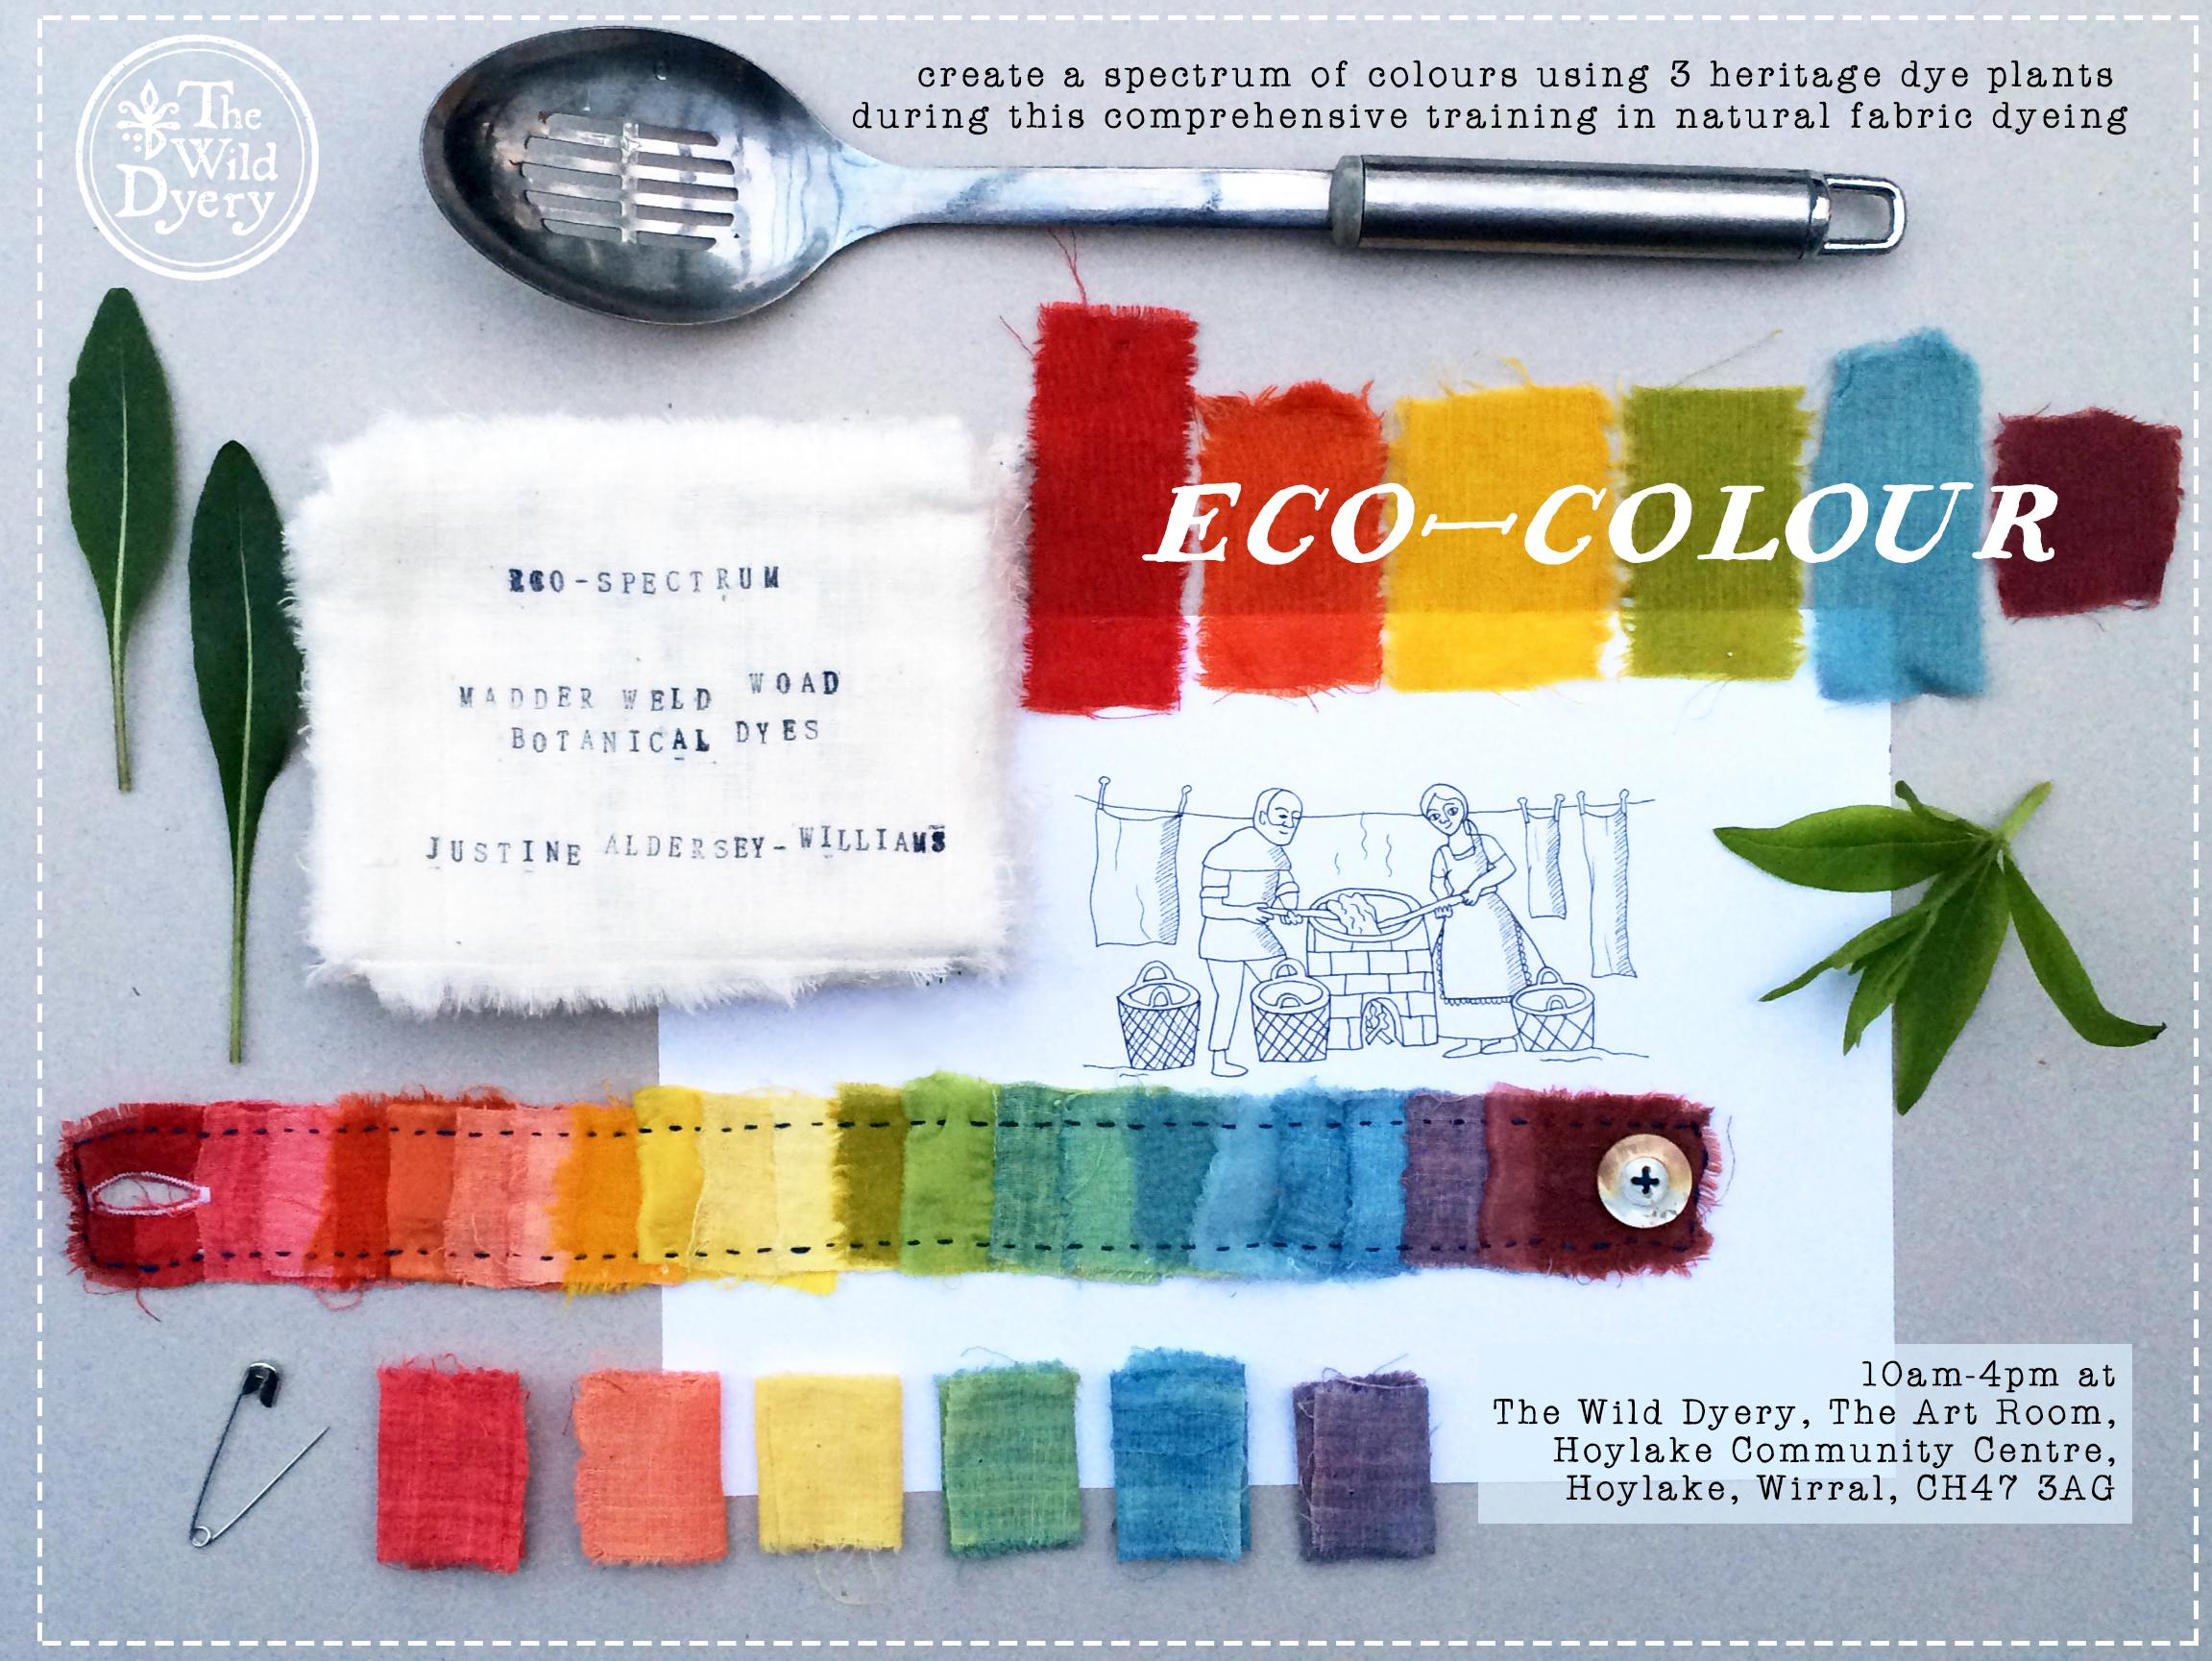 Eco-Colour (June 2017) - Natural Fabric Dyein